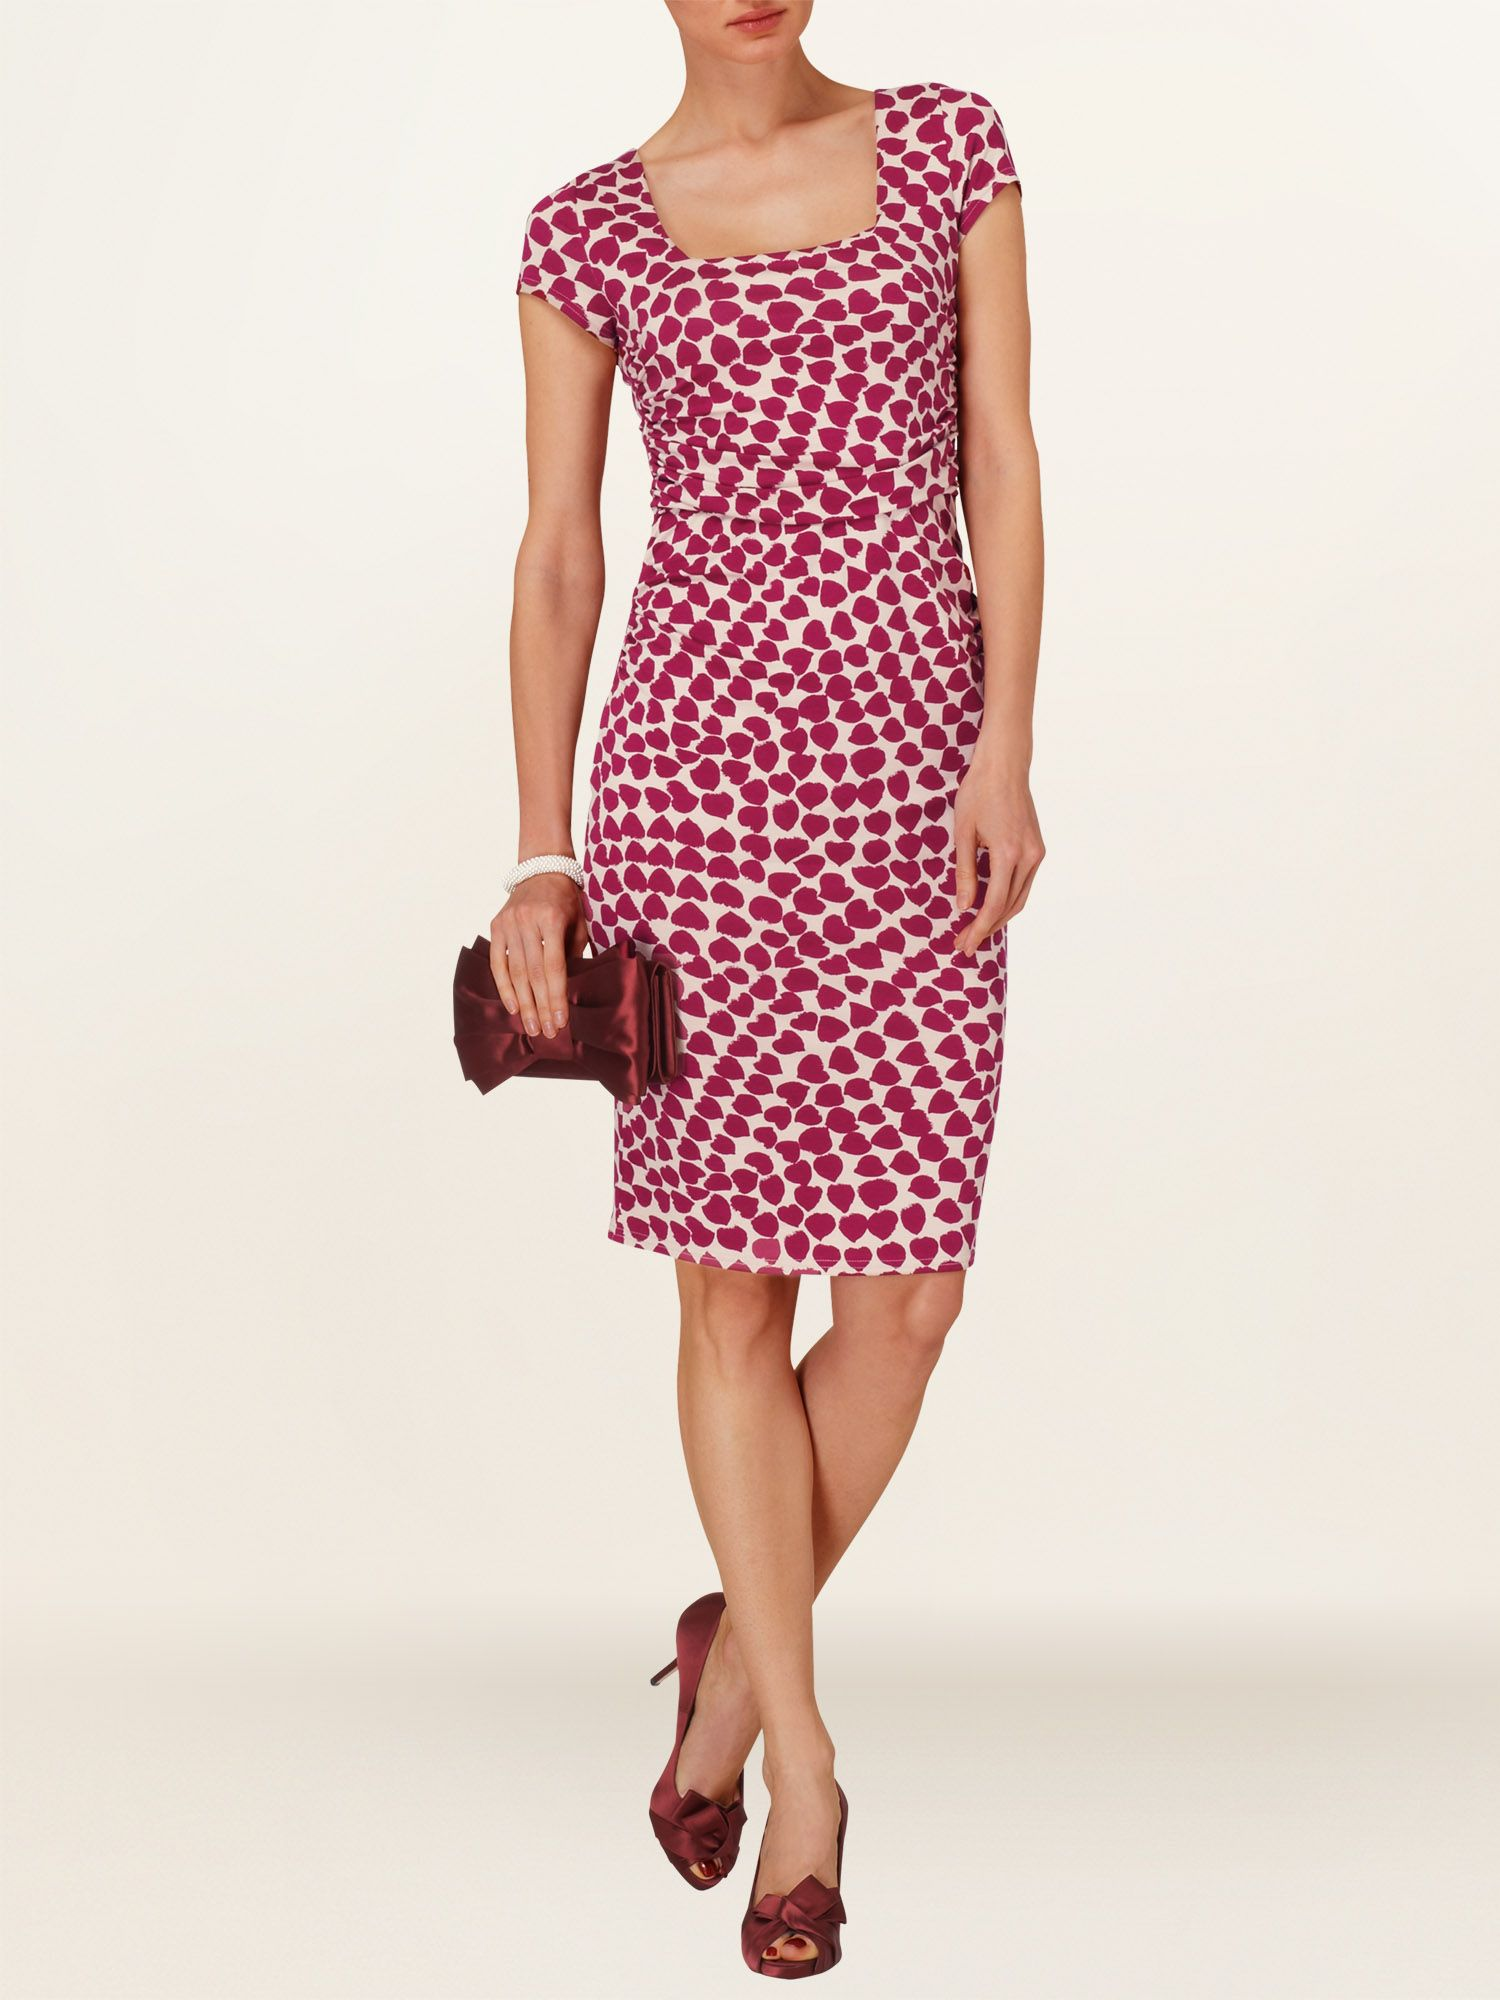 Desiree print dress